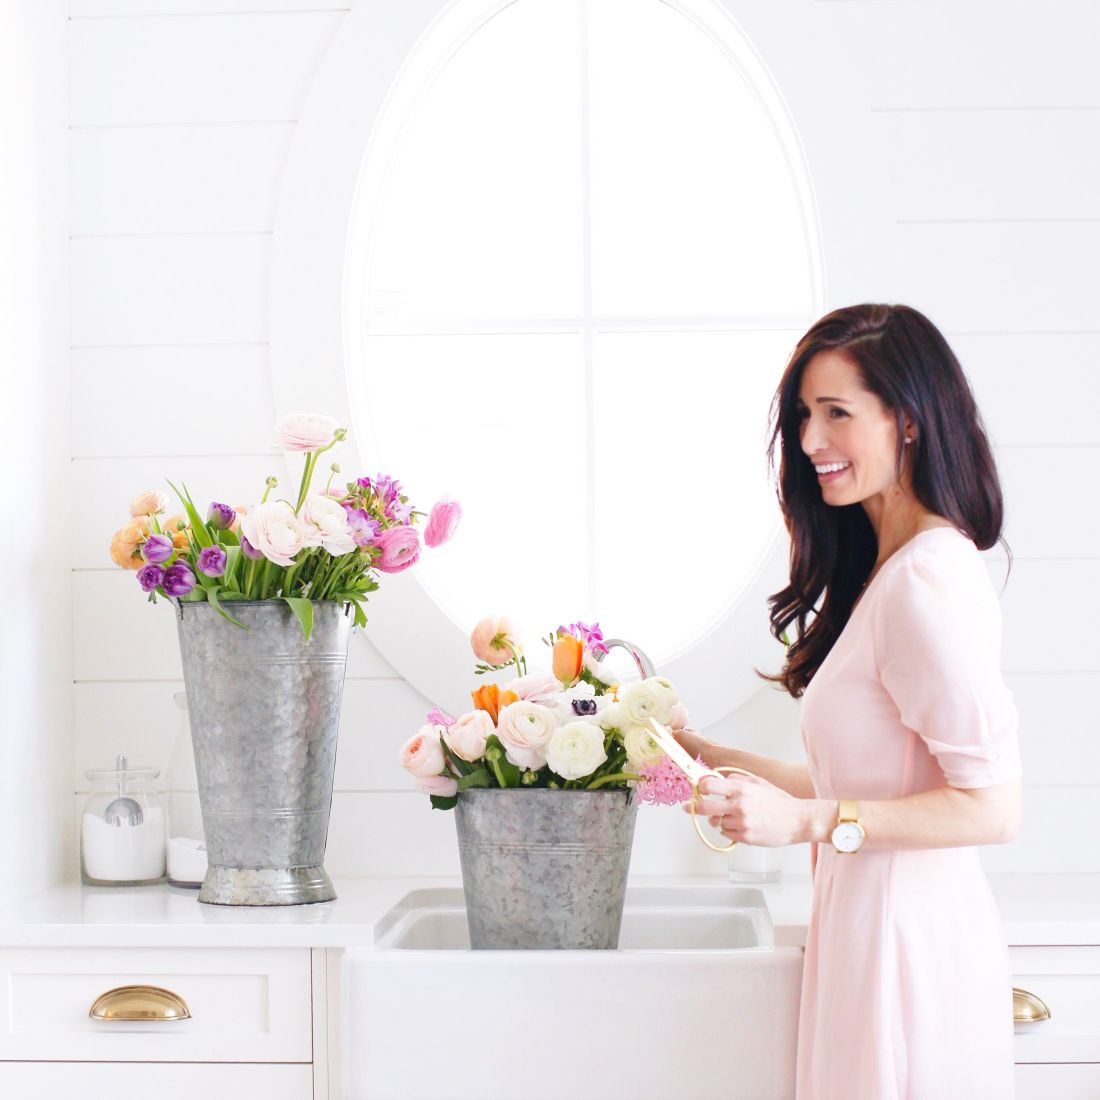 Spring flowers, pink dresses and oval window in a light white laundry room